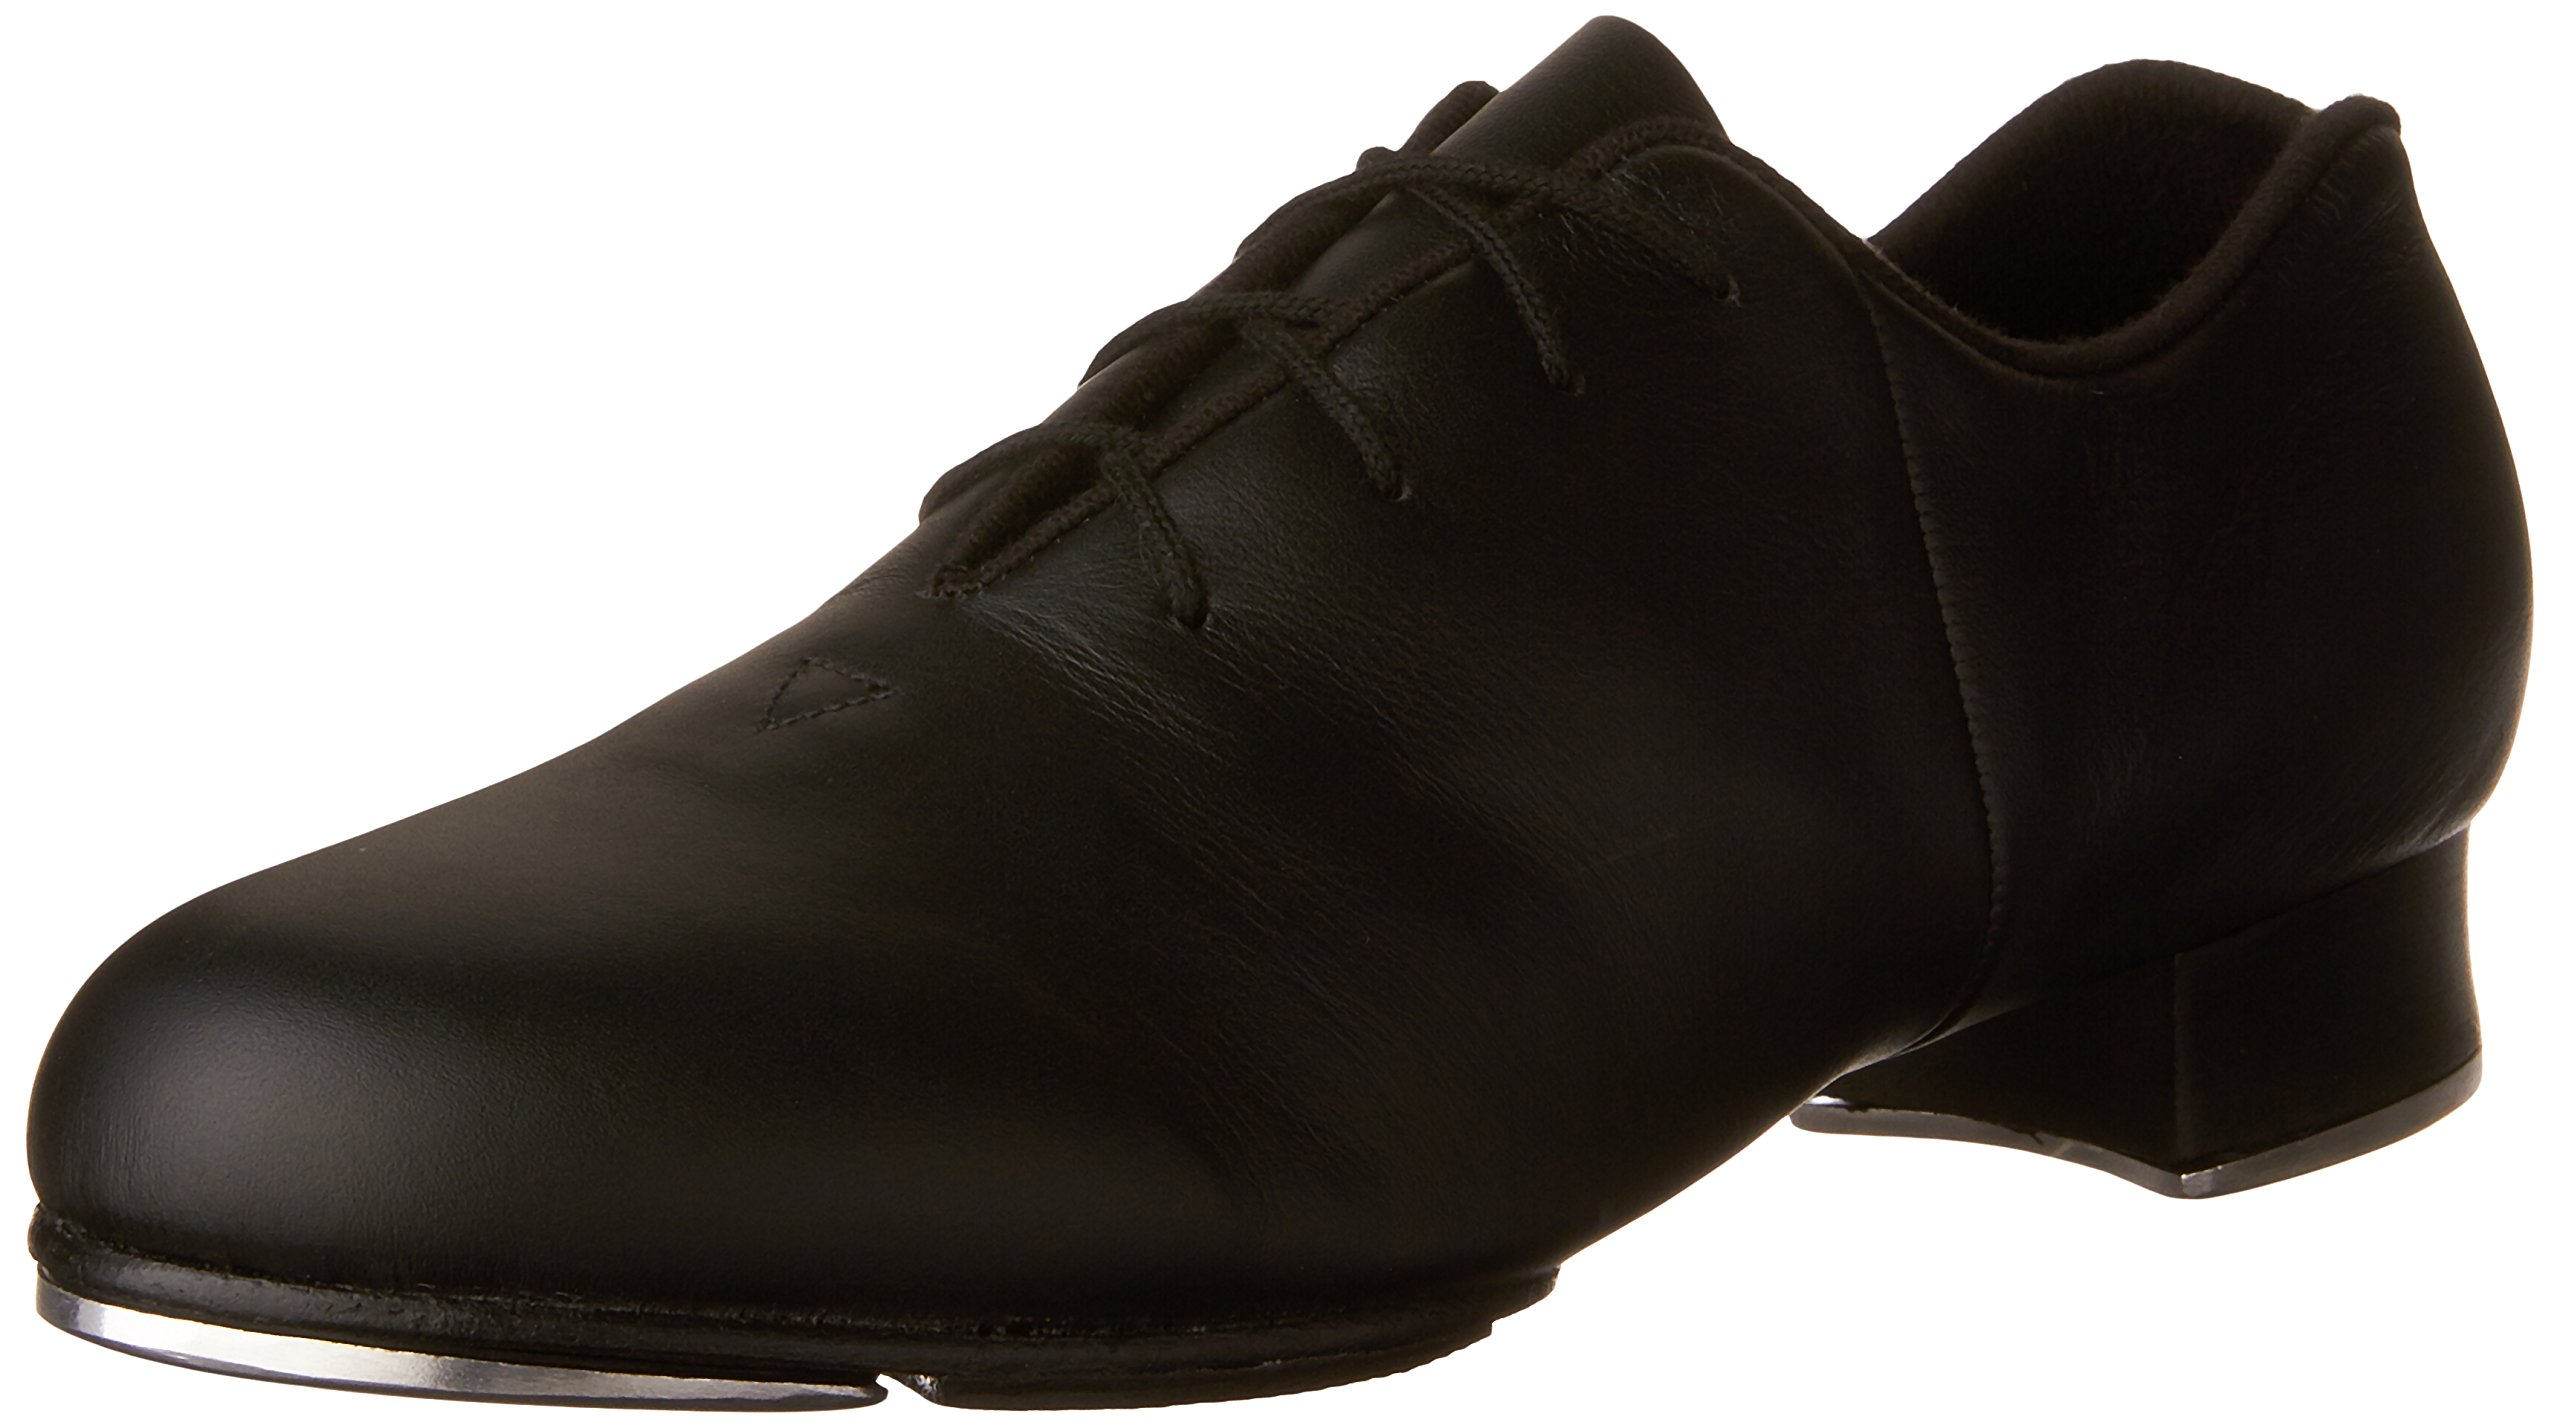 Bloch Women's Tap-Flex Tap Shoe,Black,9.5 M US